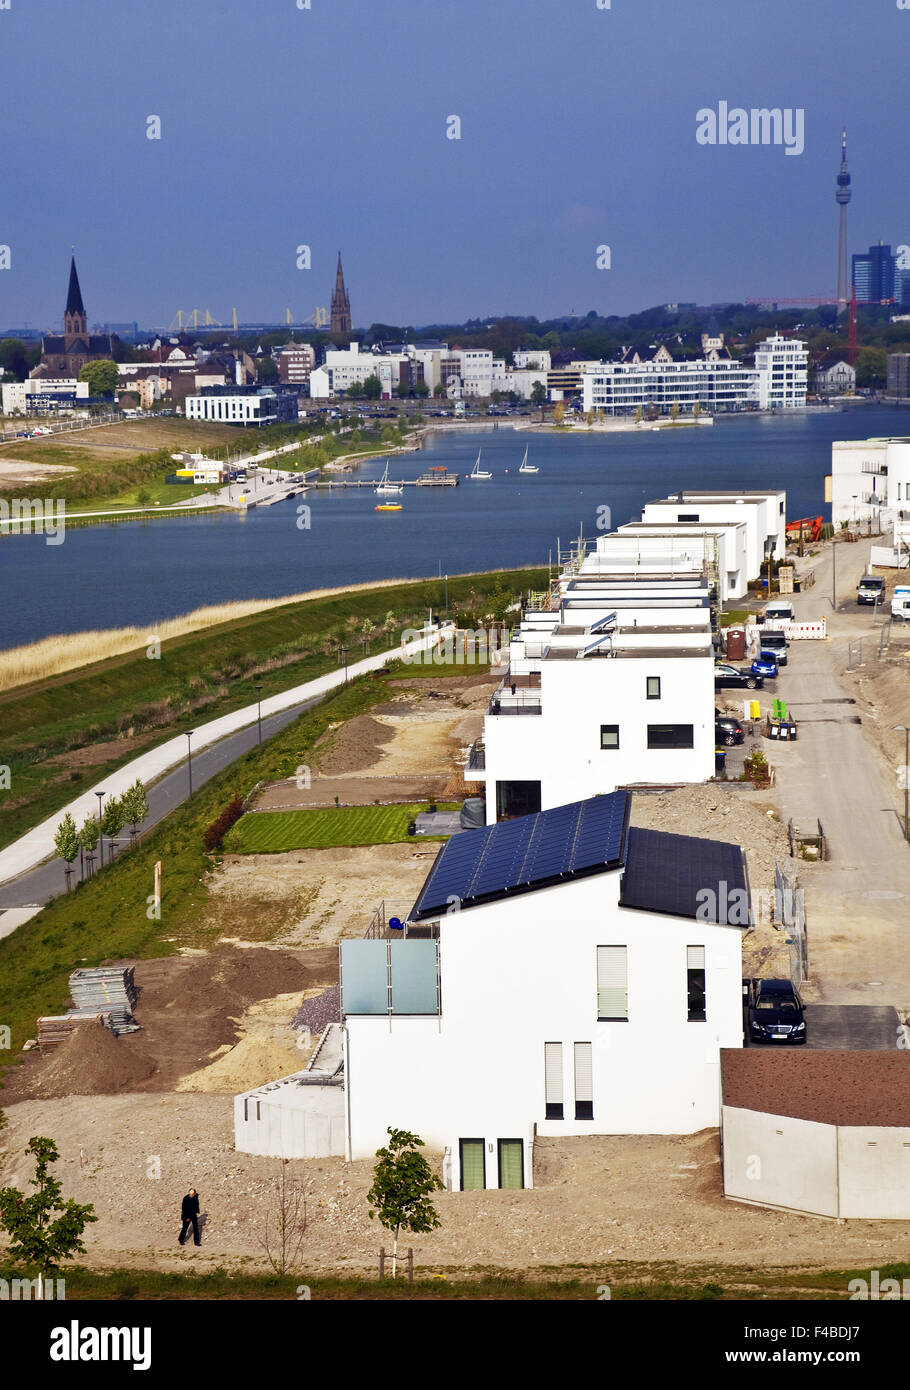 Housing development, Phoenix Lake, Dortmund. - Stock Image